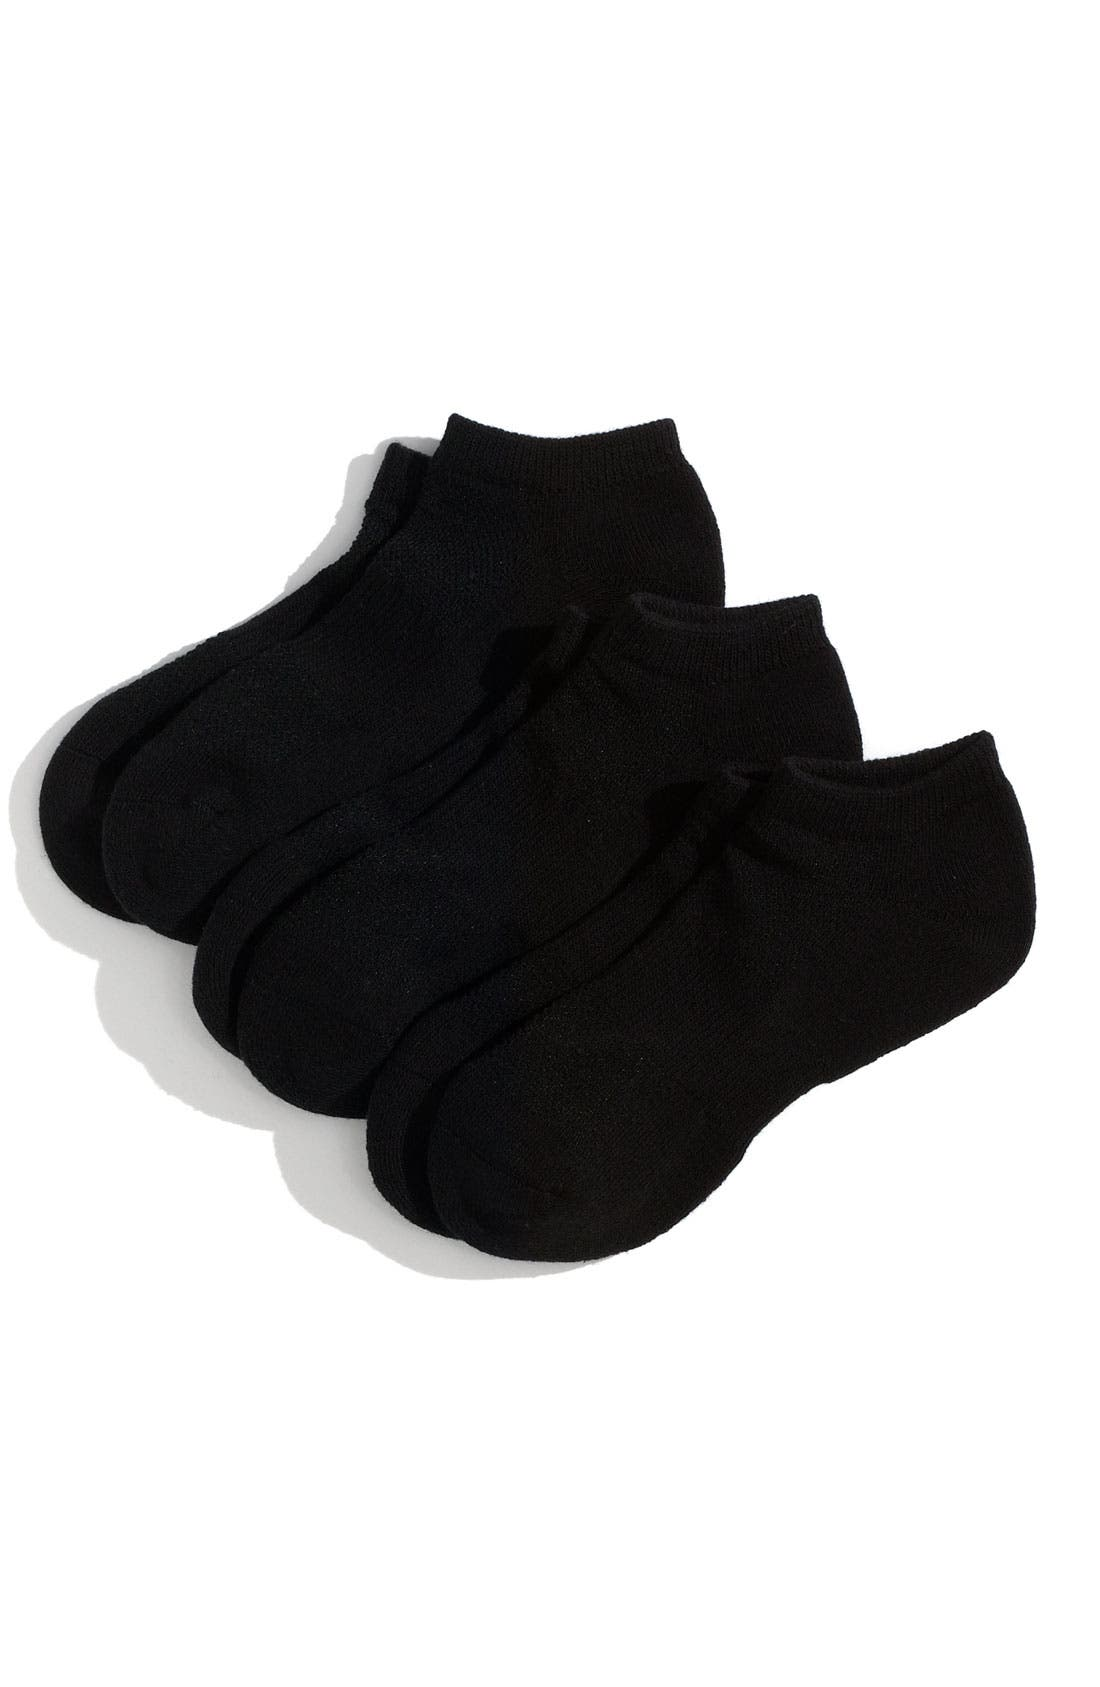 Alternate Image 1 Selected - Nordstrom Low Cut Active Socks (3-Pack)(Toddler, Little Boys & Big Boys)